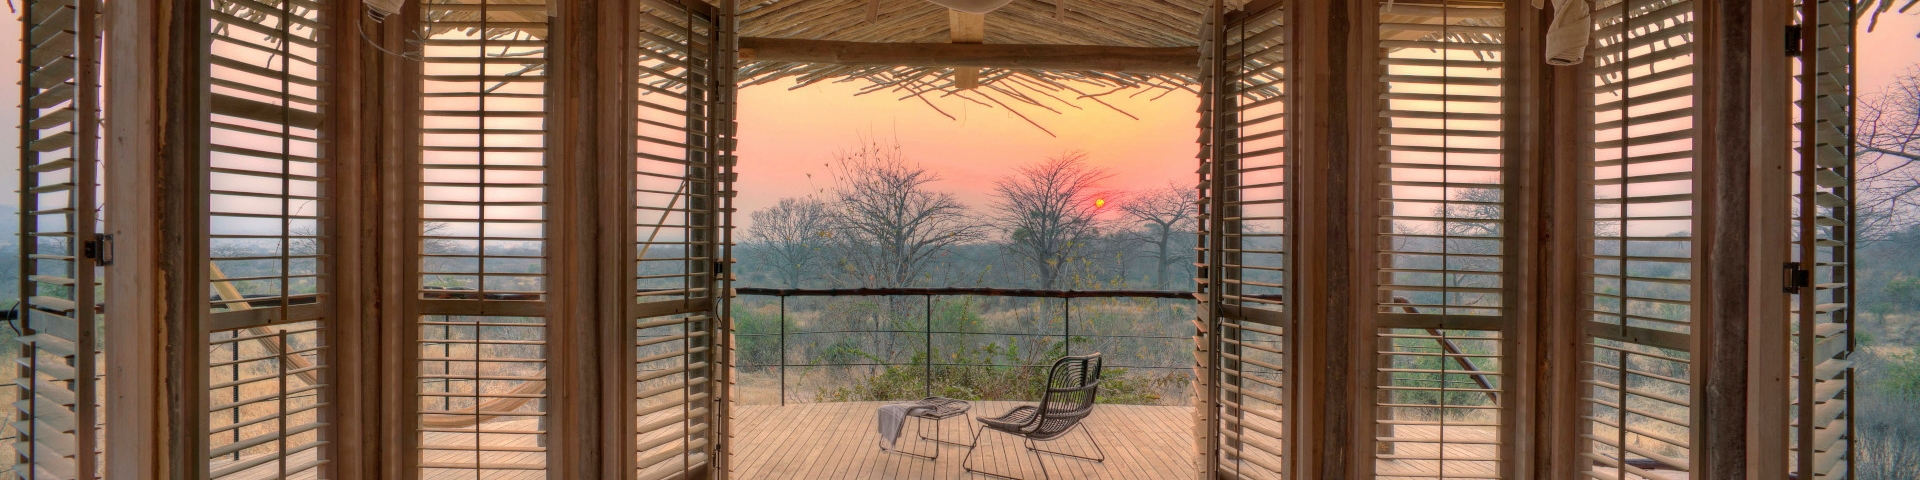 Accommodation in Ruaha National Park Tanzania Sunset from Bedroom